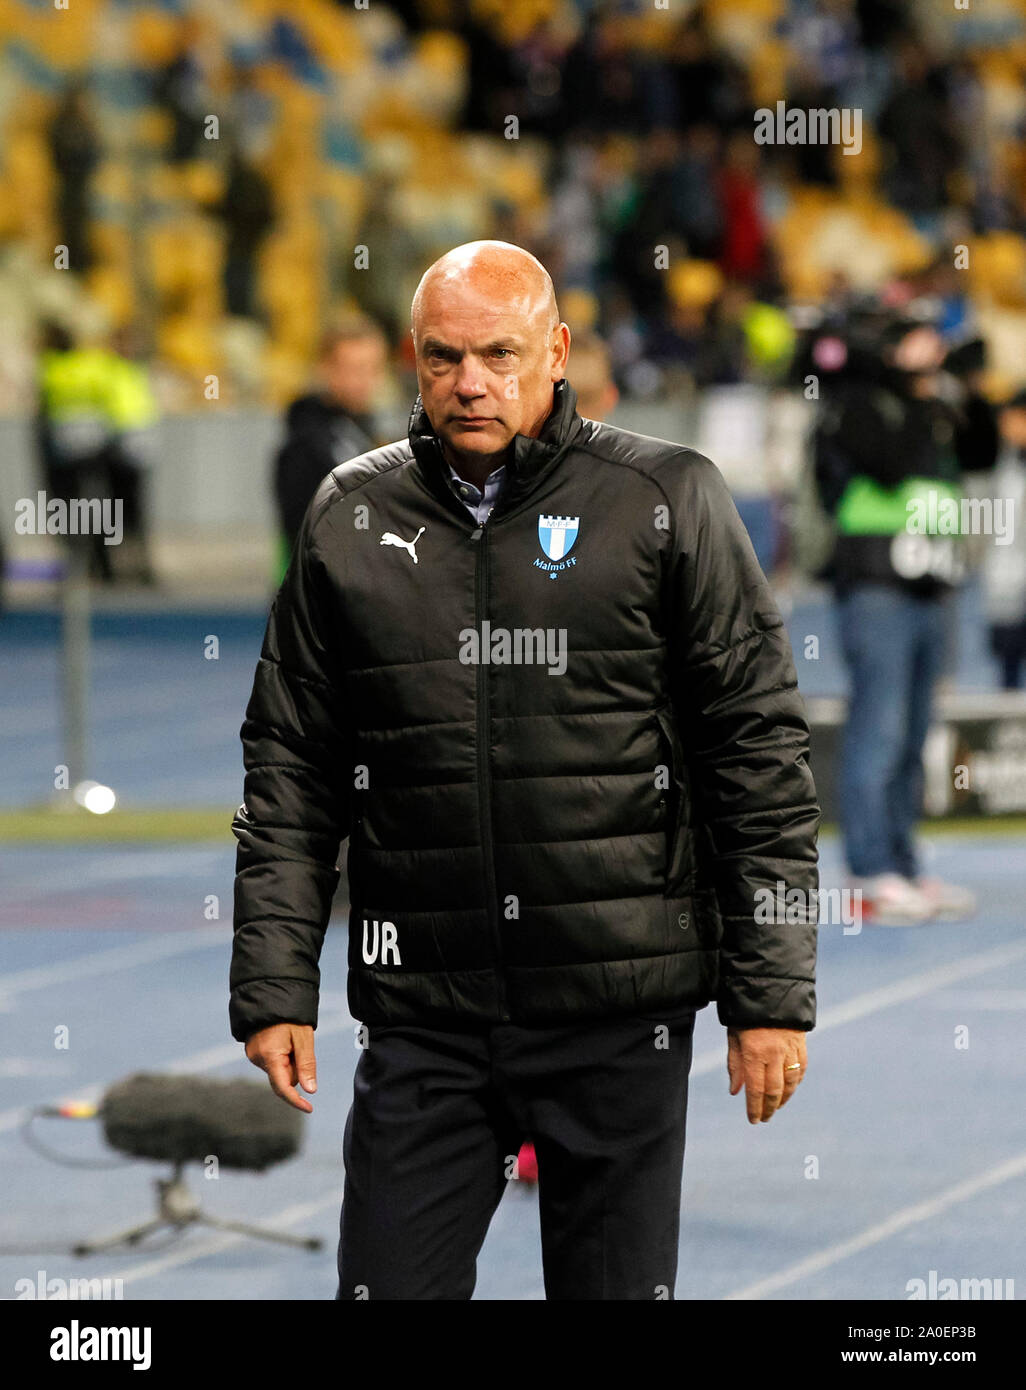 Kiev, Ukraine. 19 Sep, 2019. Uwe Rosler, entraîneur-chef de Malmö FF, vu après l'UEFA Europa League 2019/2020 phase groupe football match jour 1 jeu, entre Malmö FF Suédois et Ukrainiens FC Dynamo Kyiv, les CSN stade Olimpiyskiy. (Score final : Dynamo Kiev 1-0 Malmö FF) Credit : SOPA/Alamy Images Limited Live News Banque D'Images